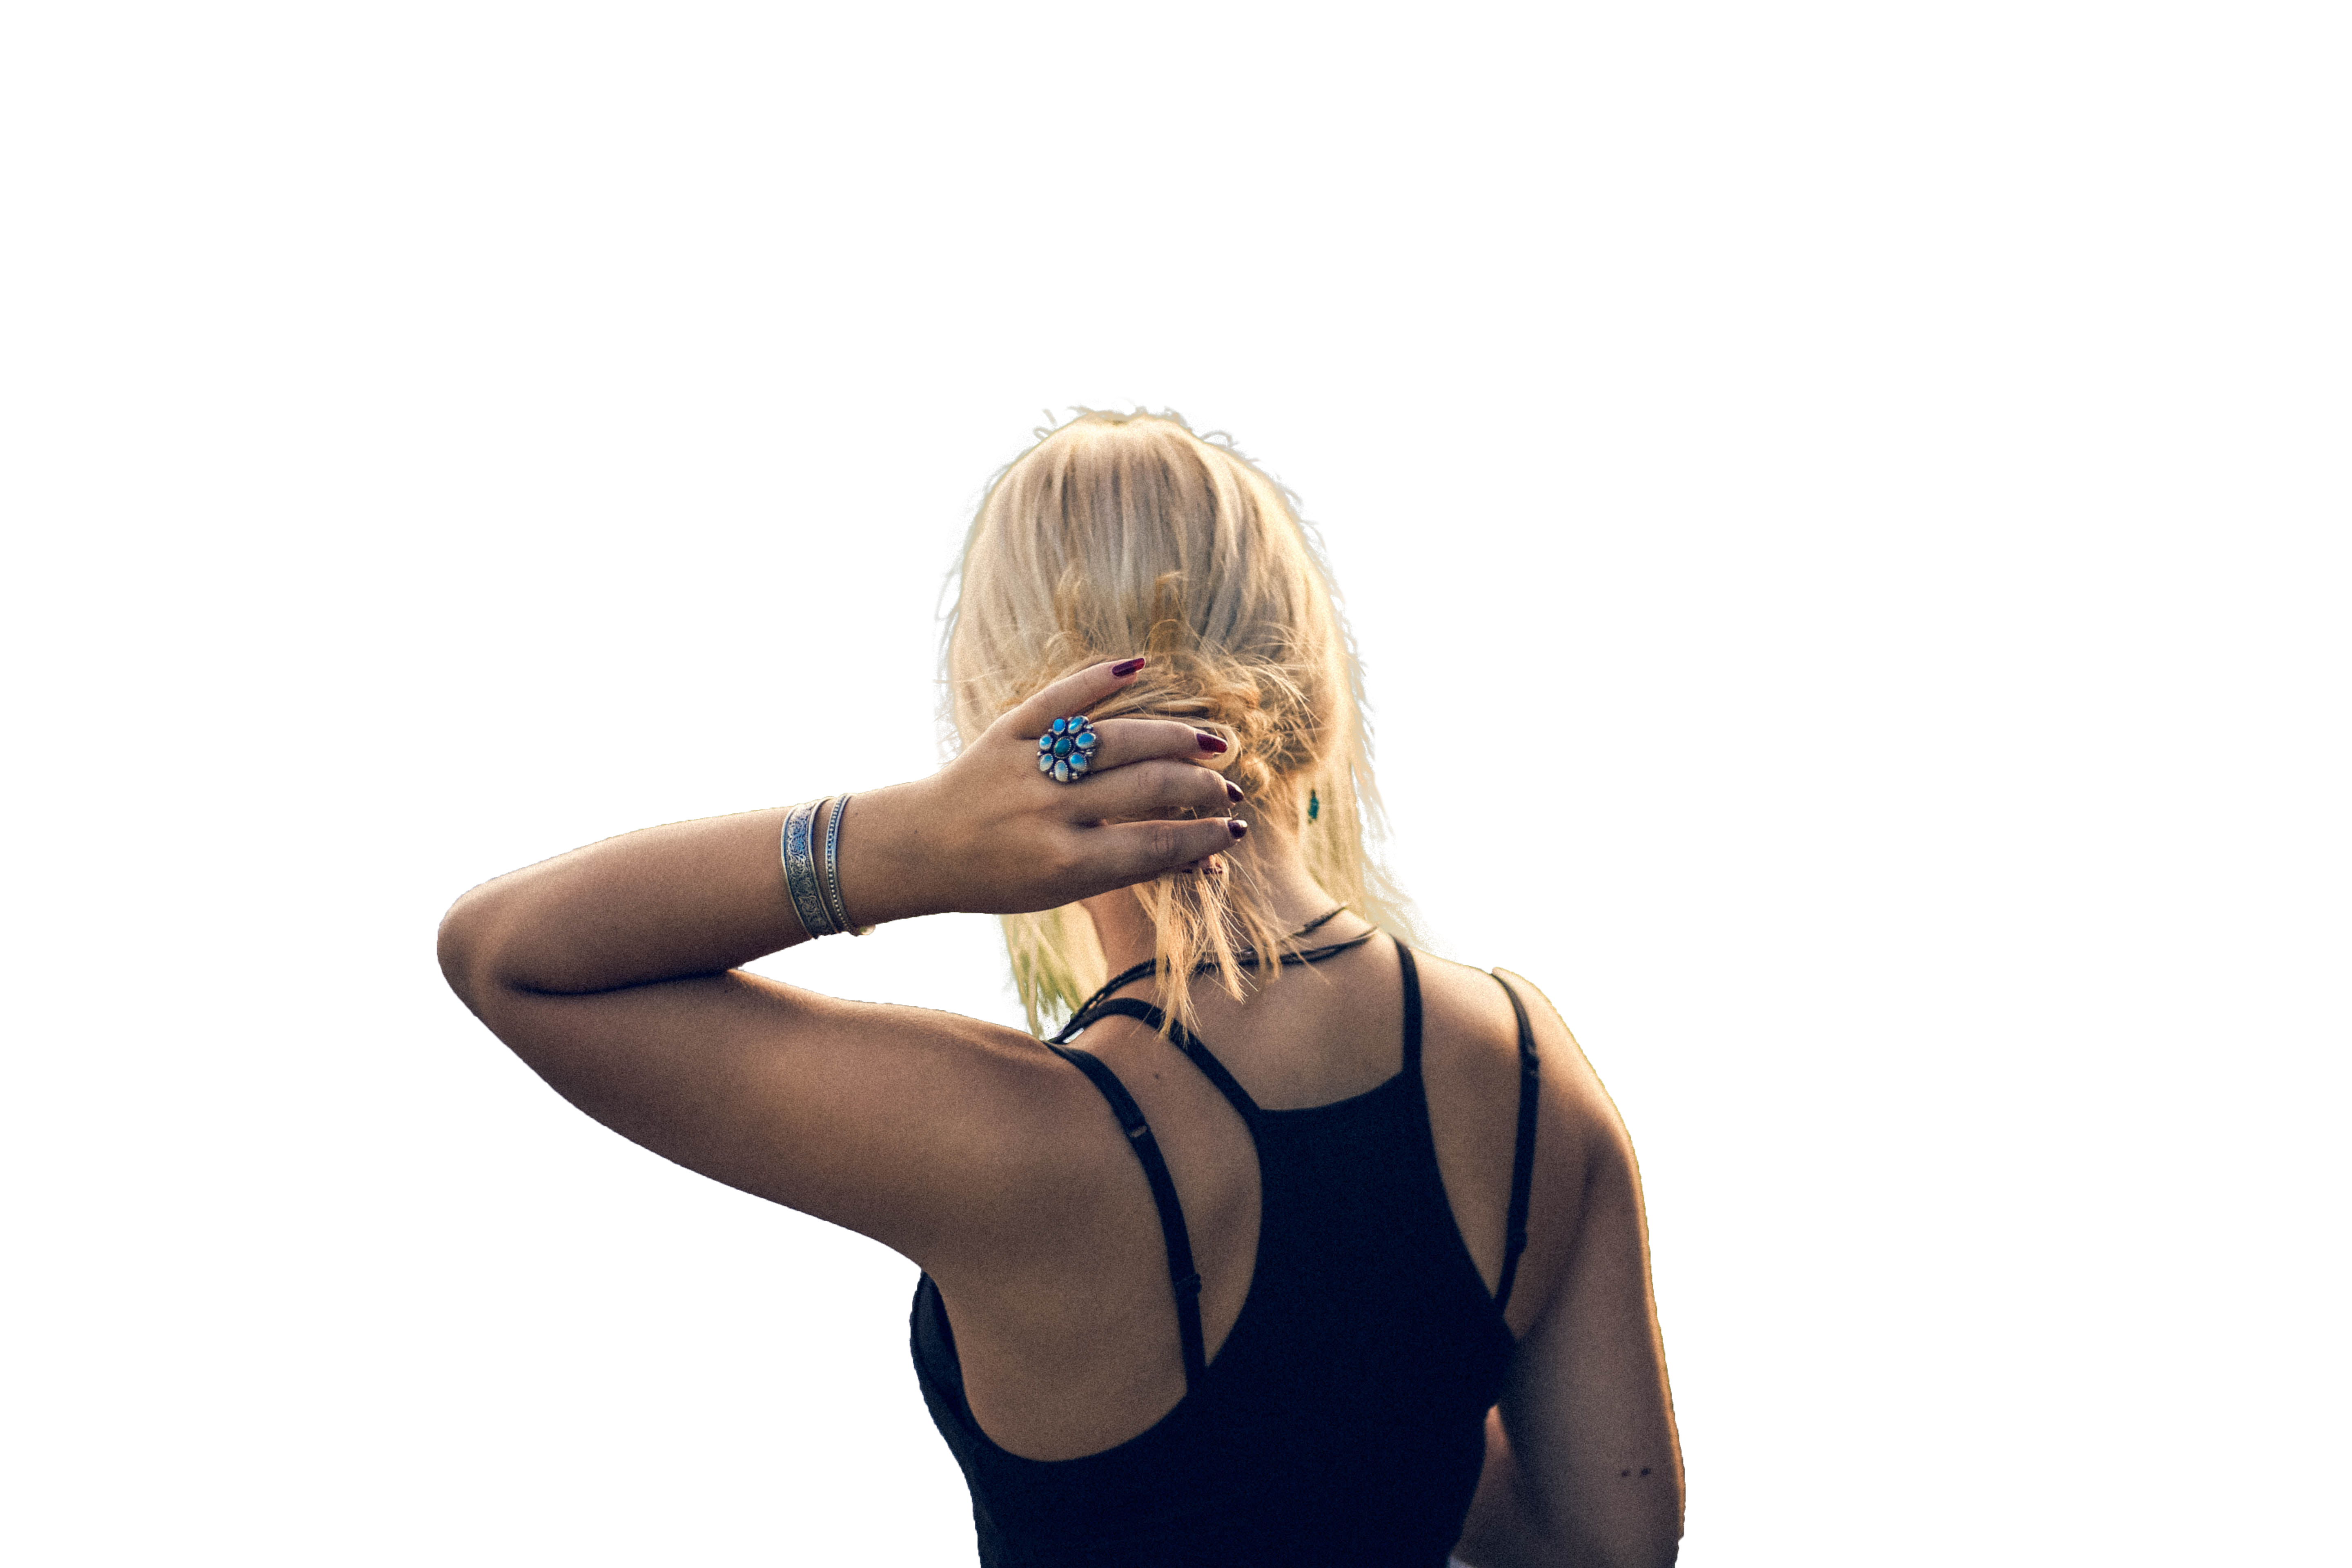 Beautiful Girl with hand on hairs back view Transparent Background PNG